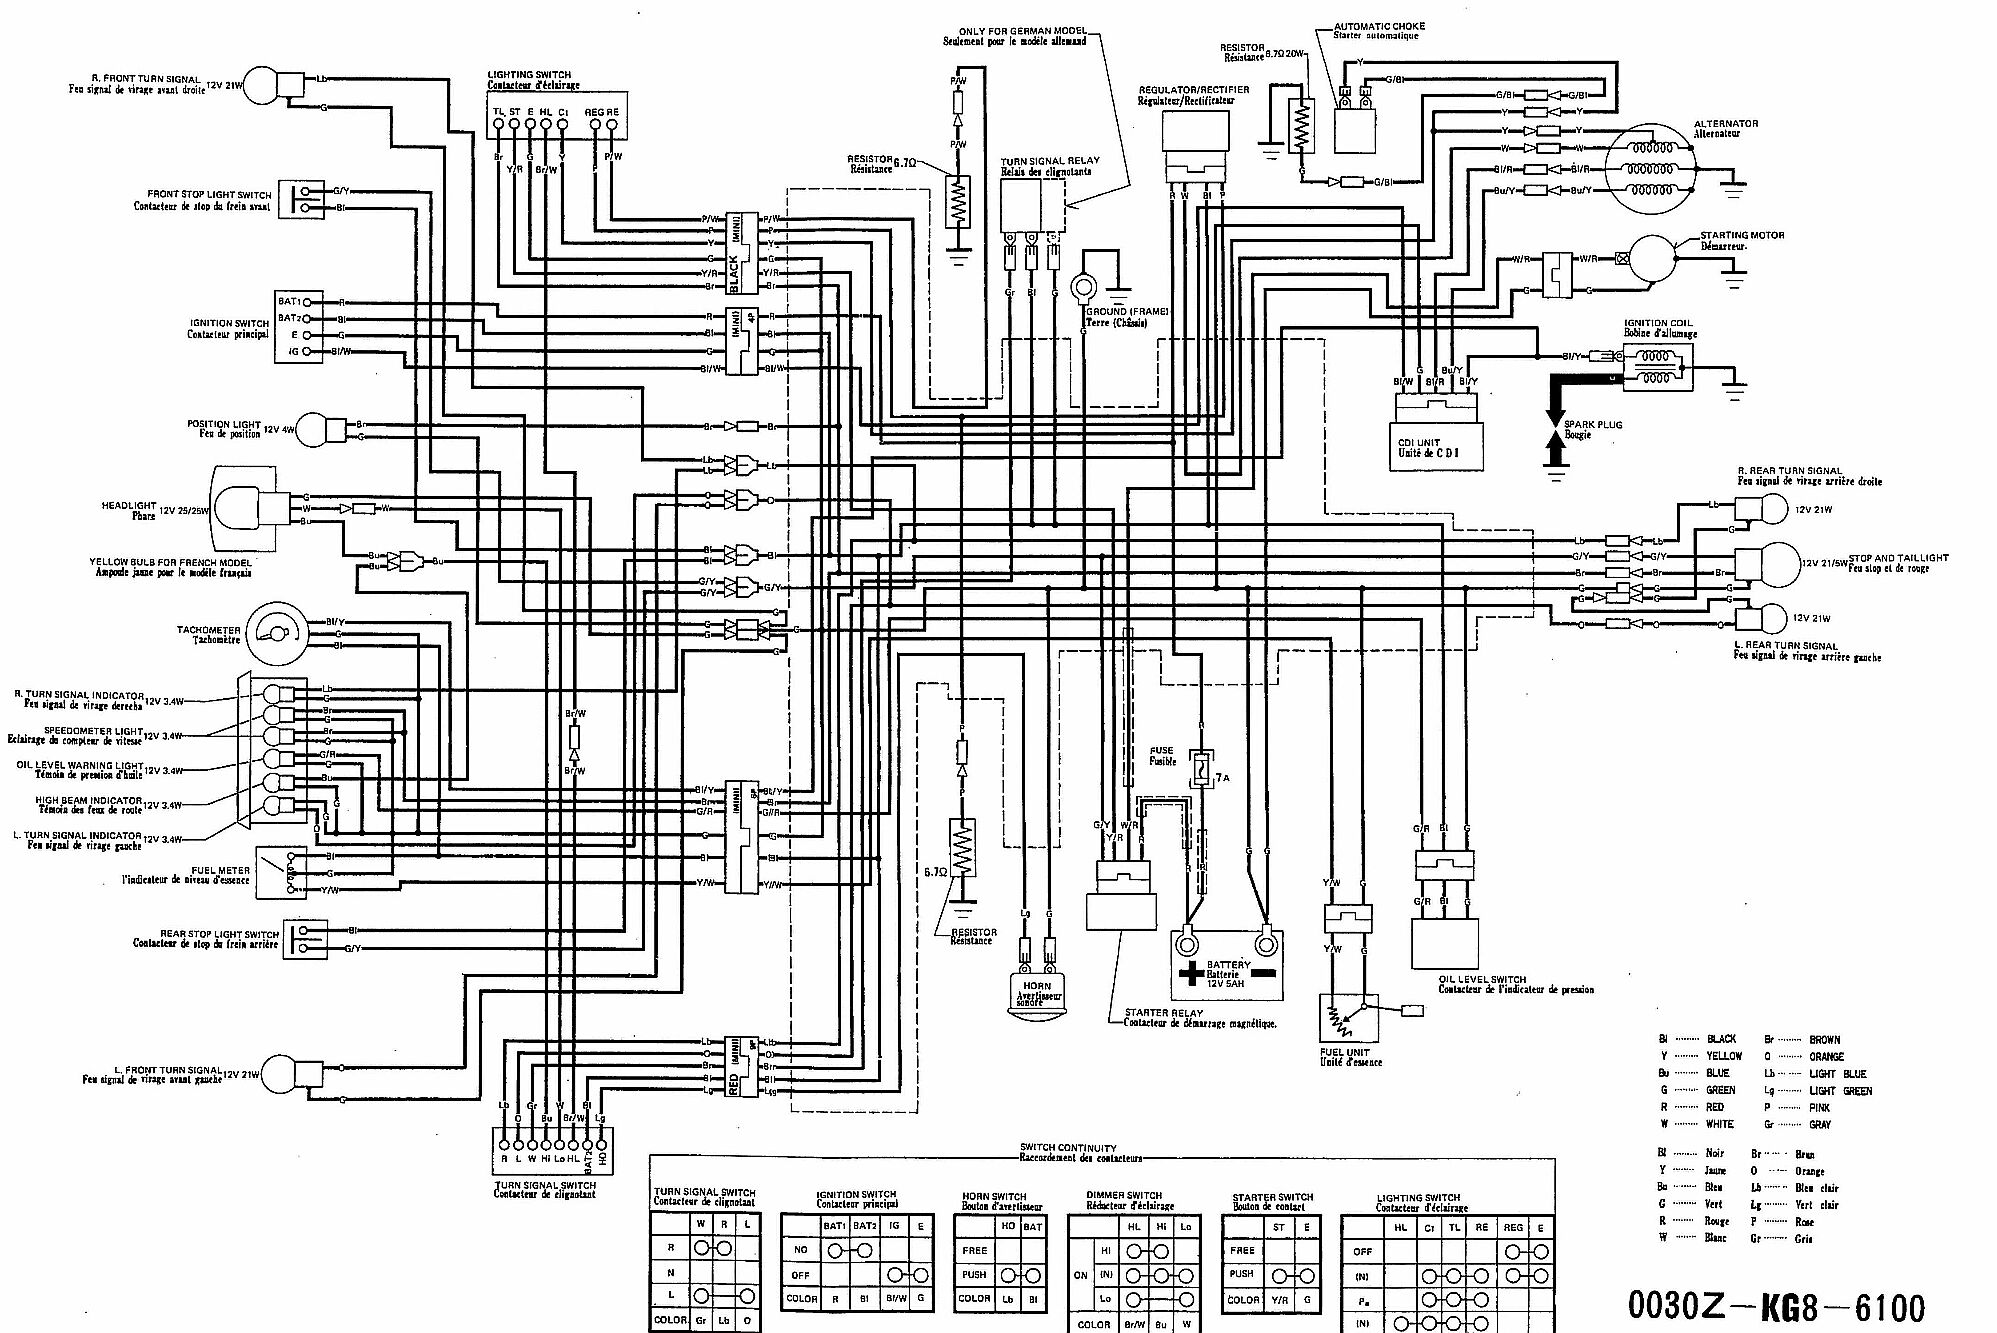 Honda Aero 80 Wiring Diagram Diagrams Scooter Turn Signal Get Free Image About 50 1984